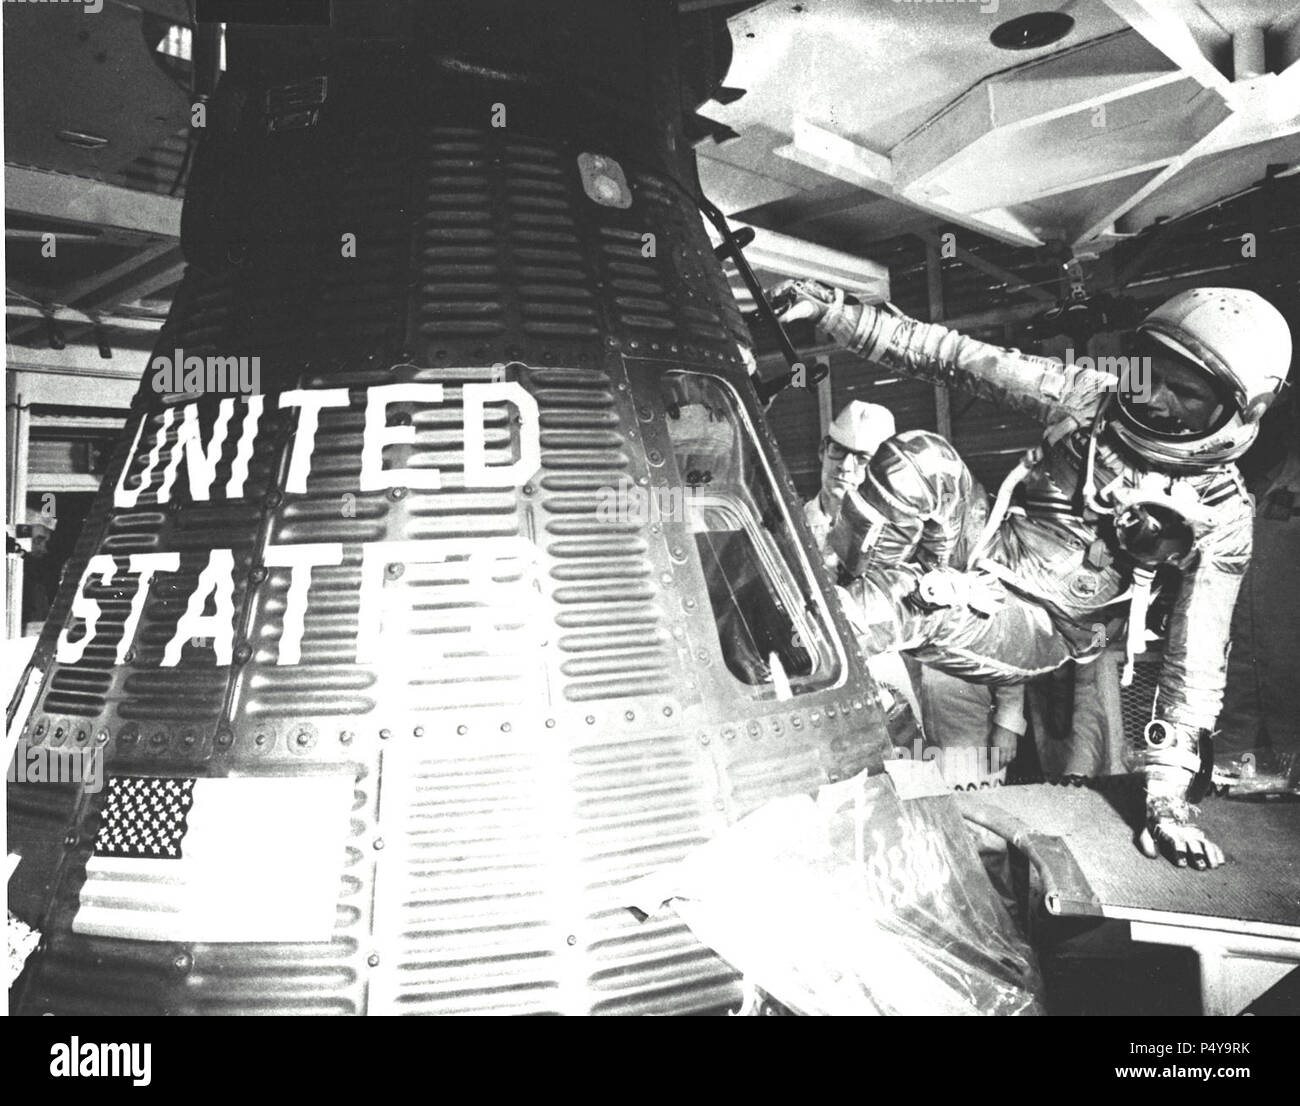 Astronaut John H. Glenn, Jr., pilot of the Mercury-Atlas 6 (MA-6) space flight, enters the Mercury Friendship 7 spacecraft during the MA-6 pre-launch preparations at Cape Canaveral - Stock Image